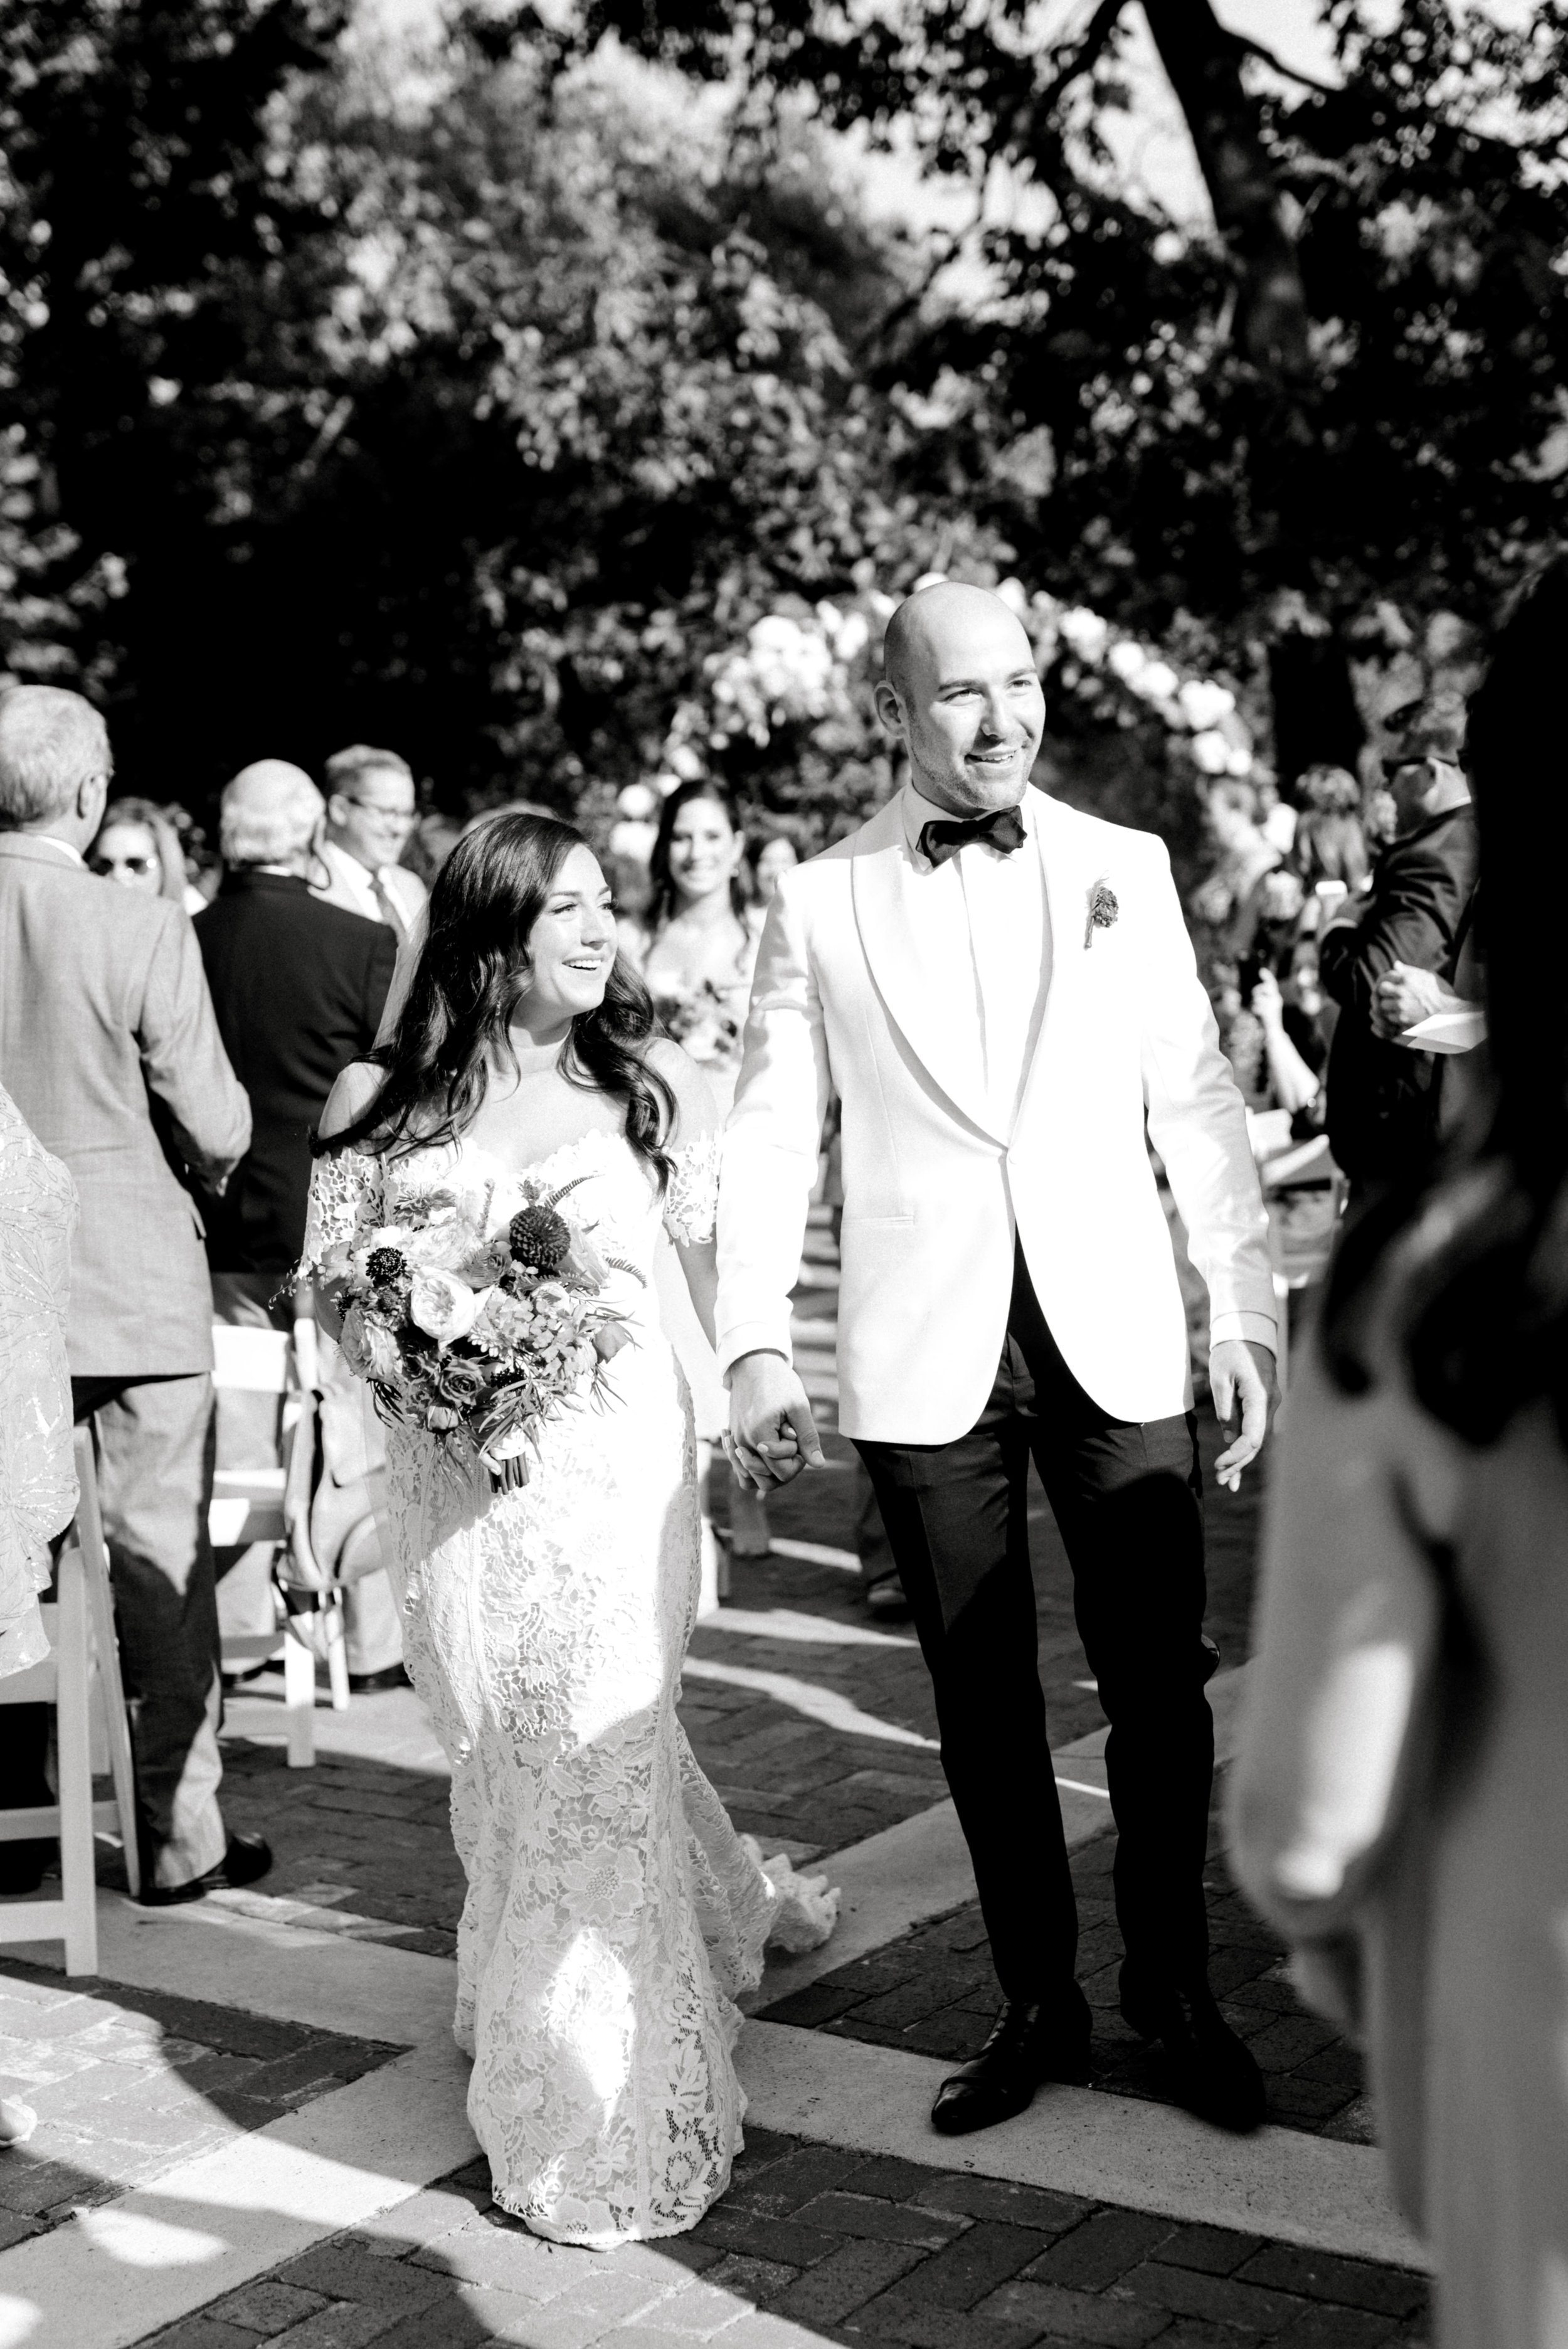 Happily married, these two recess back down the aisle after saying their vows for their bright summer wedding at Hotel du Village.